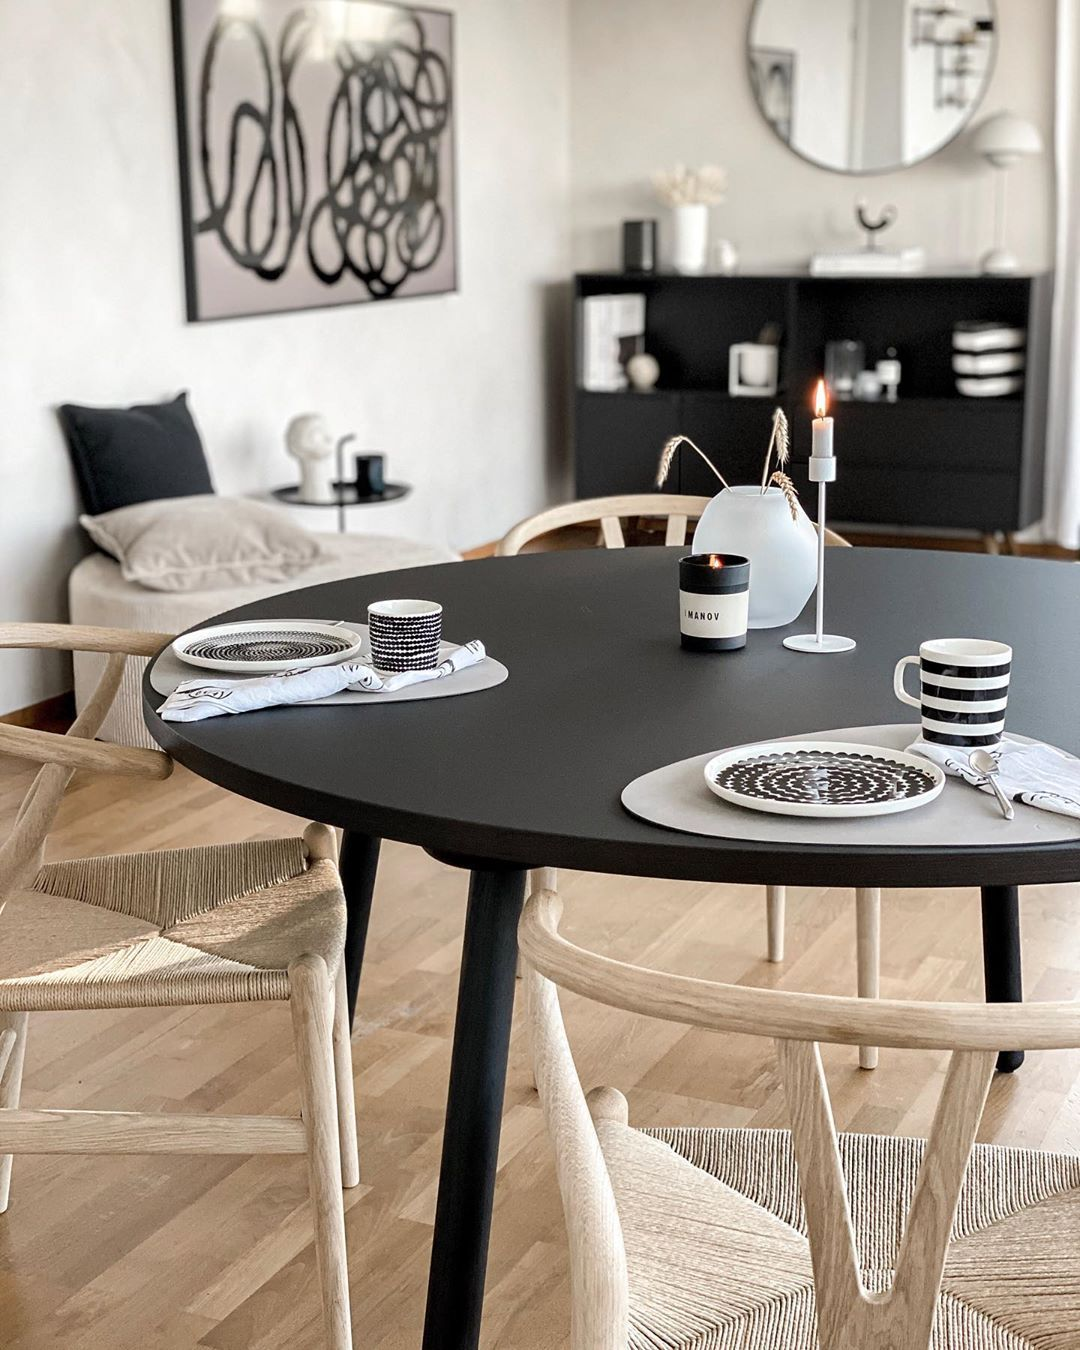 17 Scandinavian Dining Tables With Hygge Style In 2020